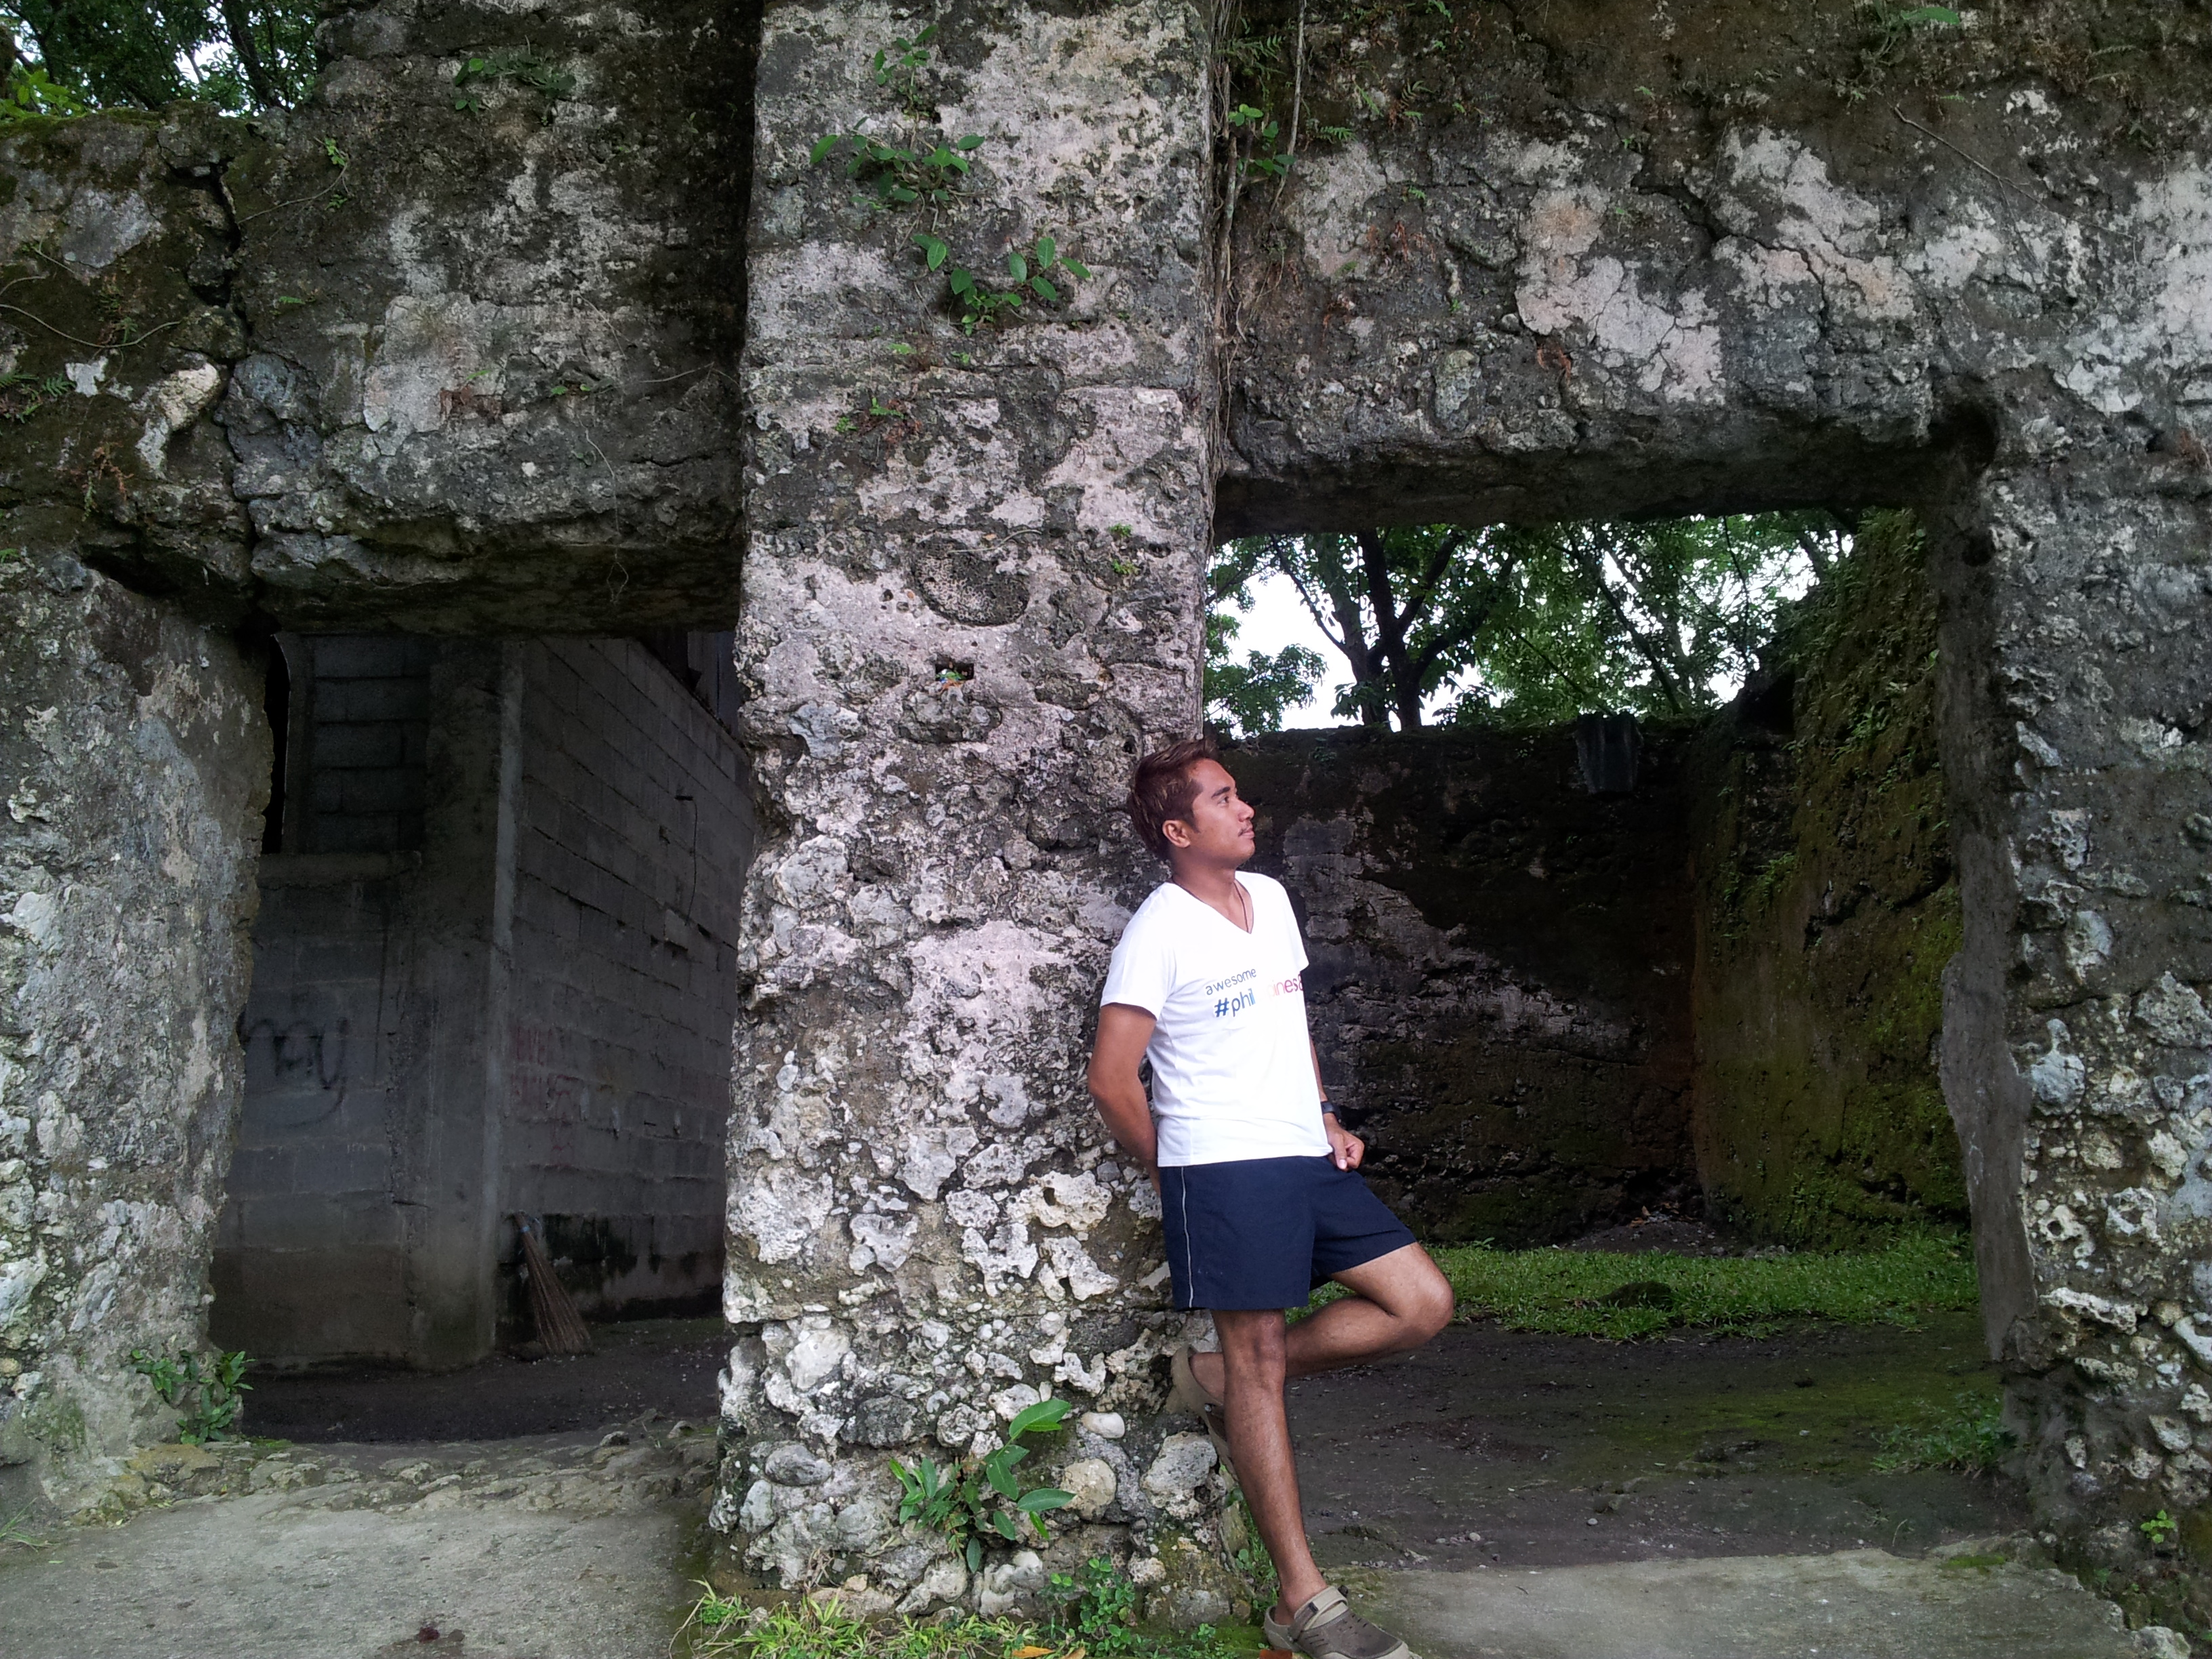 camiguin old catarman church ruins top places to see in camiguin old catarman church ruins top places to see in camiguin photo essay